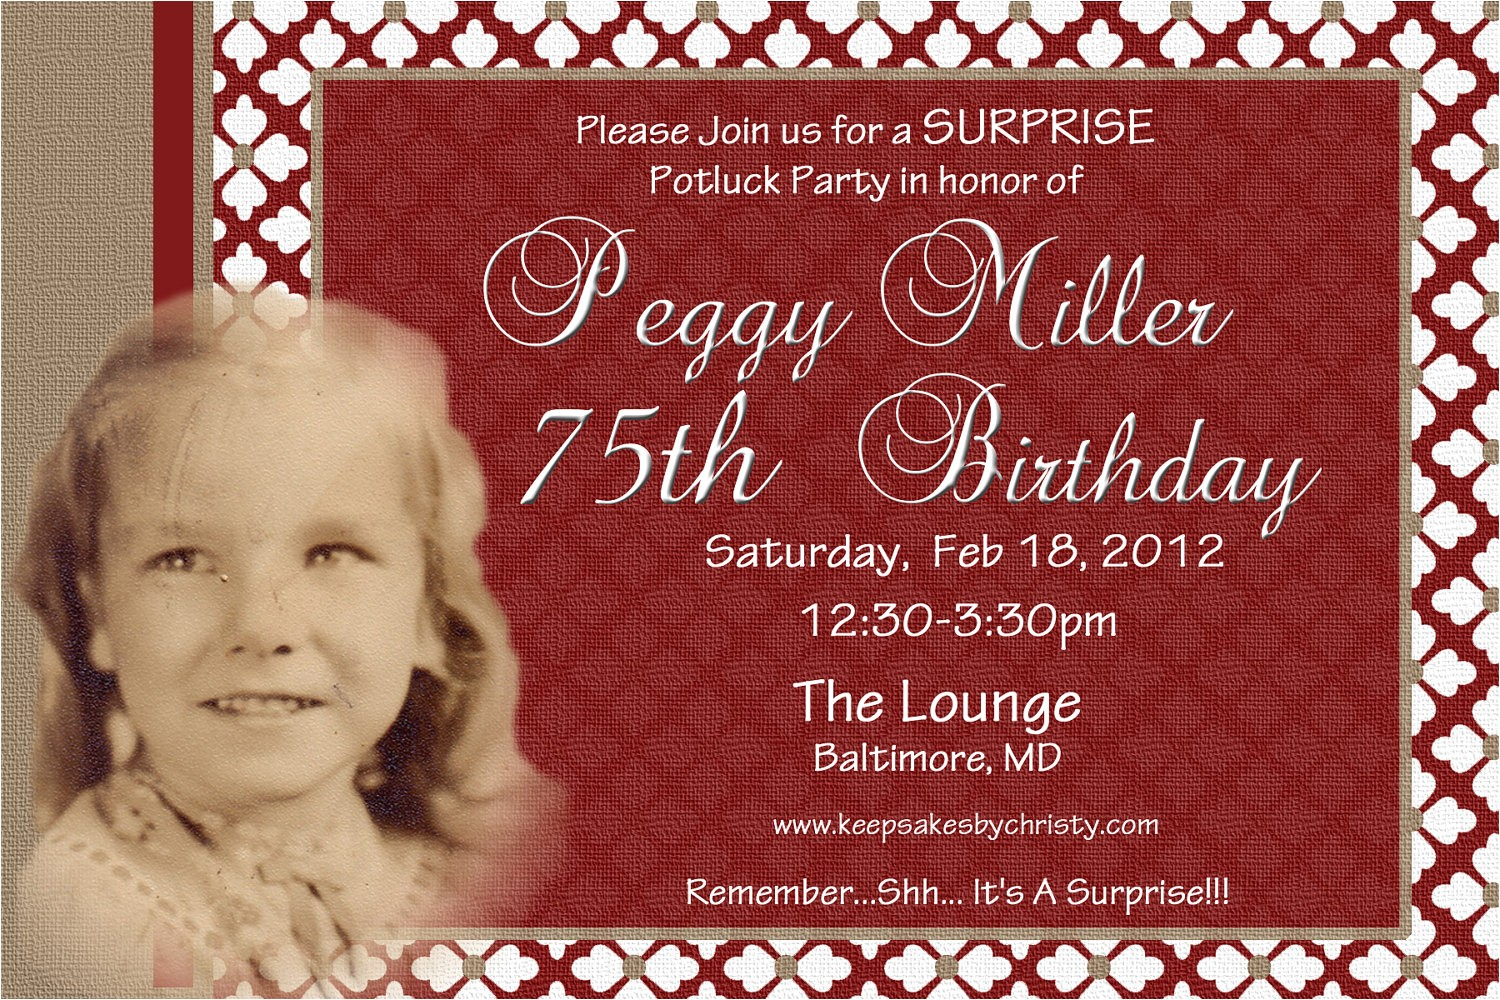 Birthday Invitations for 75th Party 75th Birthday Invitations Ideas Bagvania Free Printable